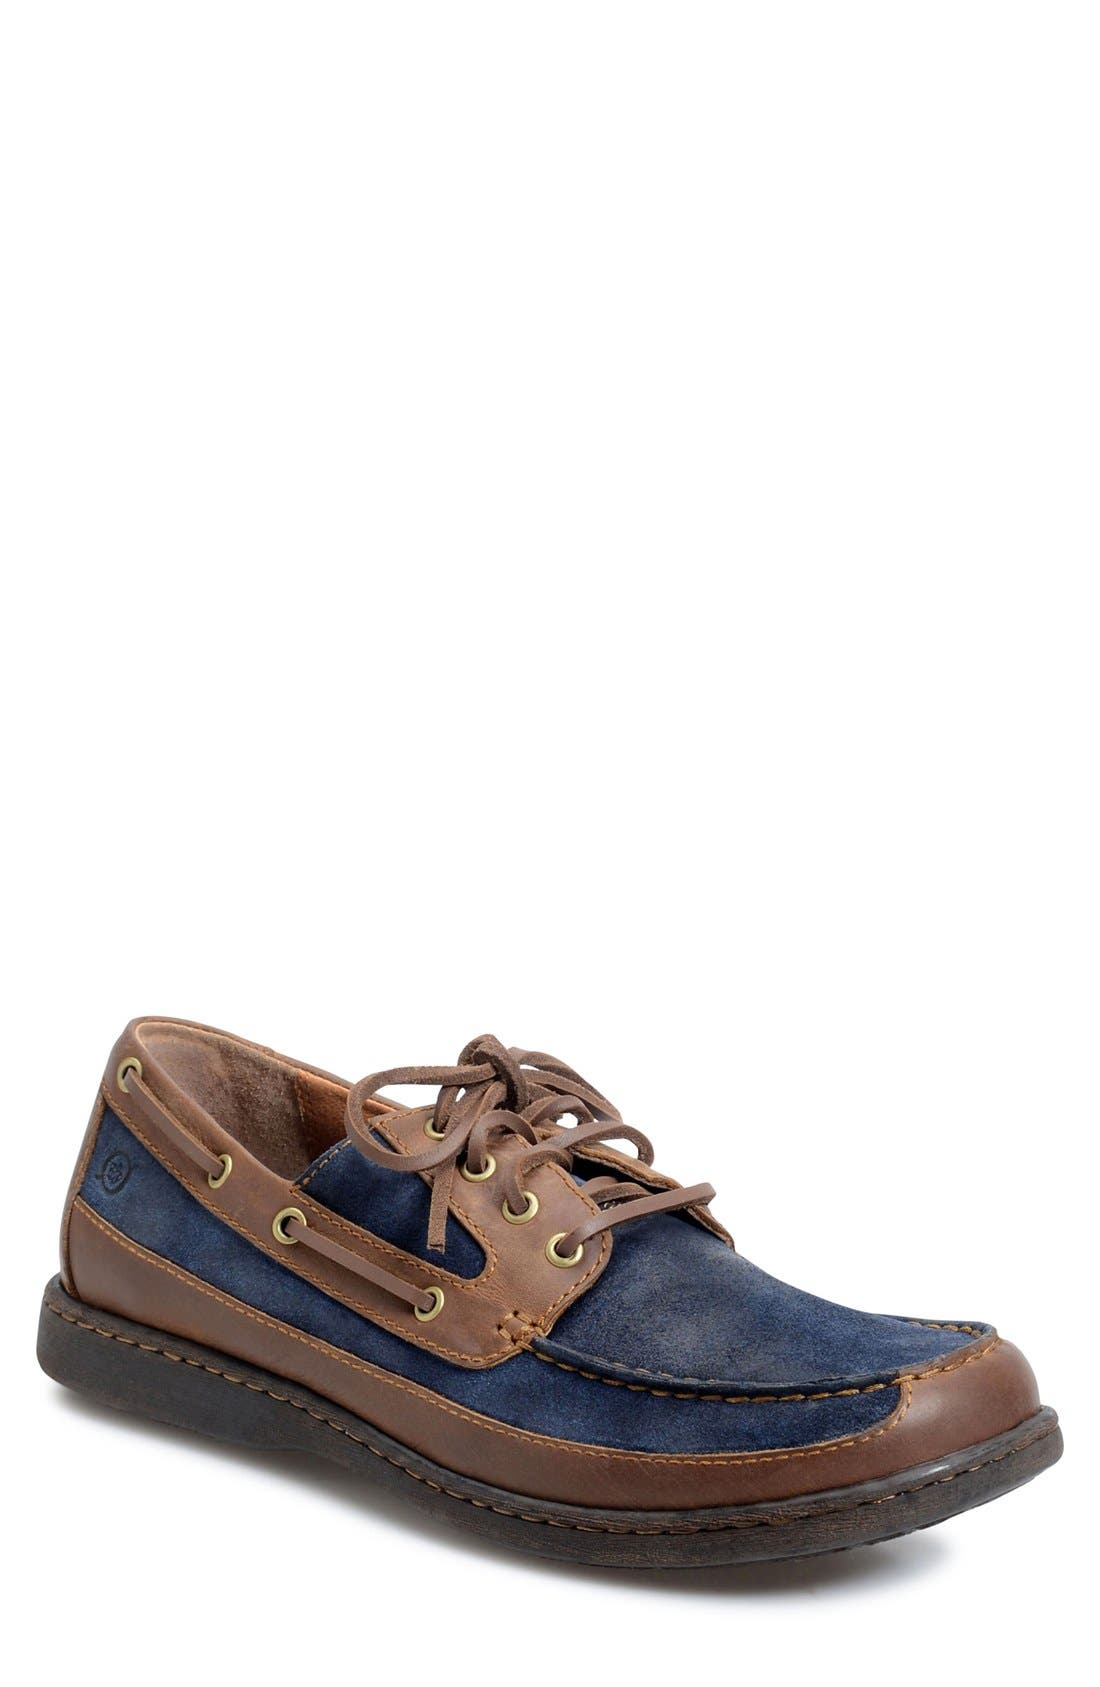 Alternate Image 1 Selected - Børn 'Harwich' Boat Shoe (Men)